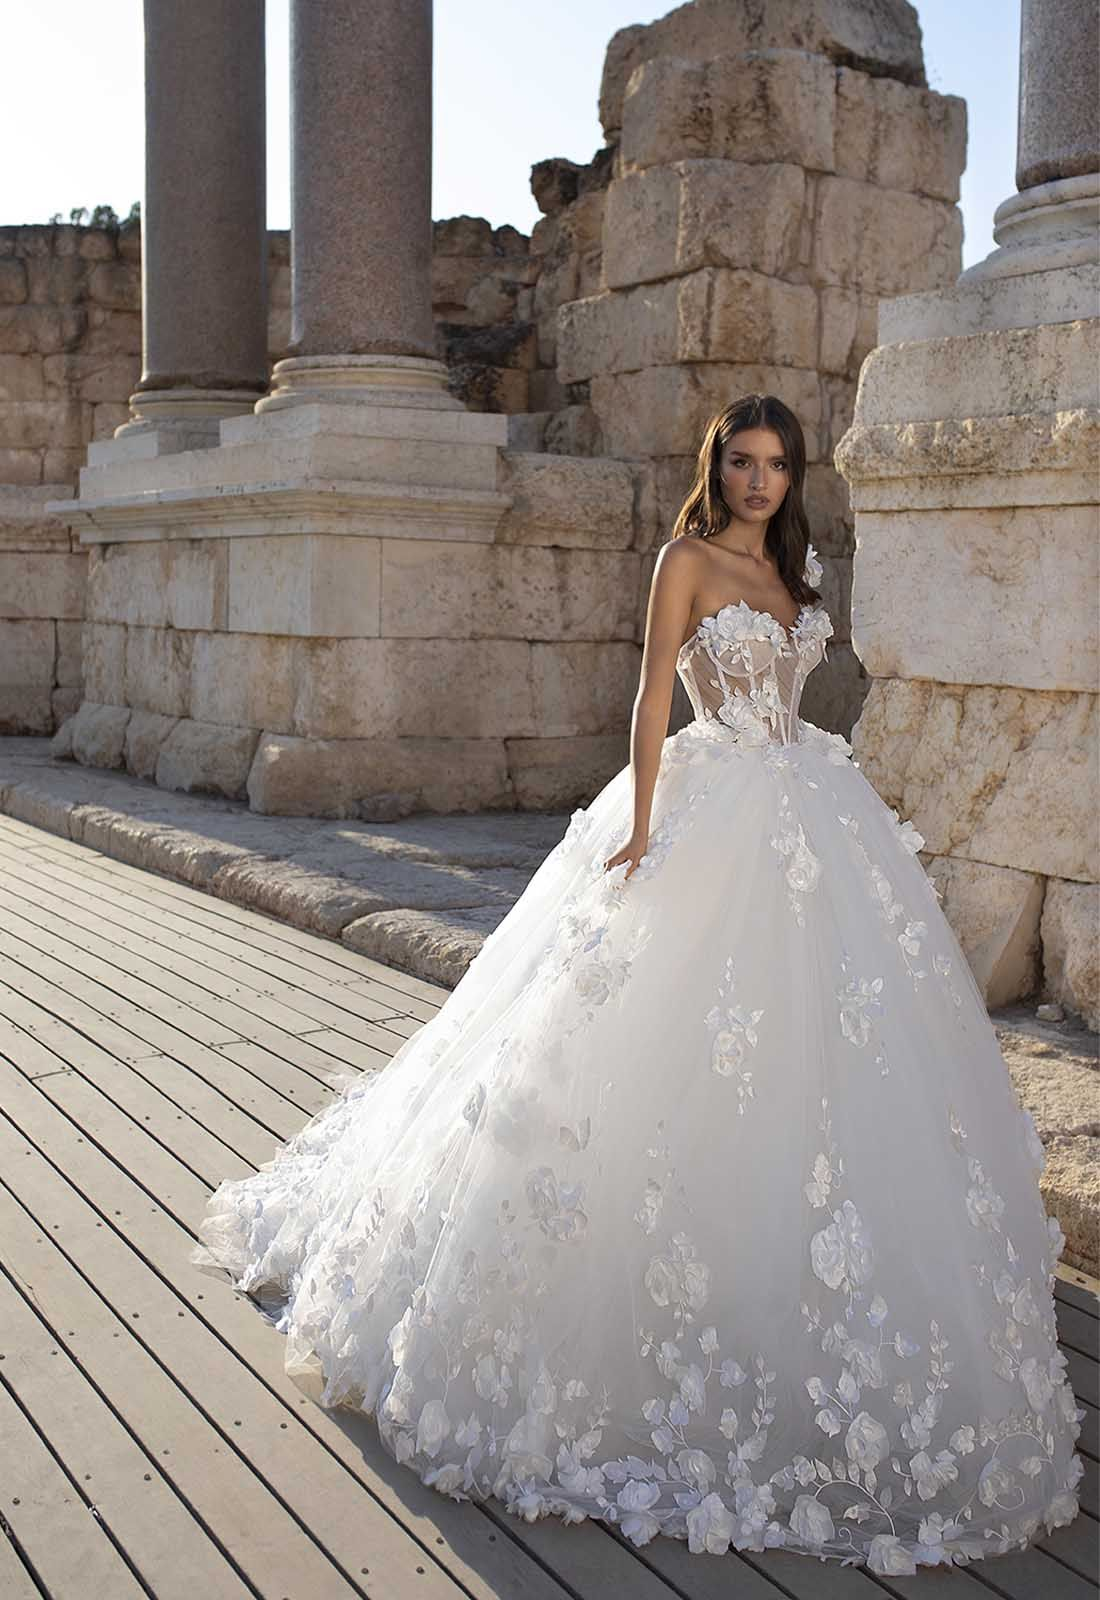 Pnina Tornai In 2020 Pnina Tornai Wedding Dress Wedding Dresses Bridal Dresses